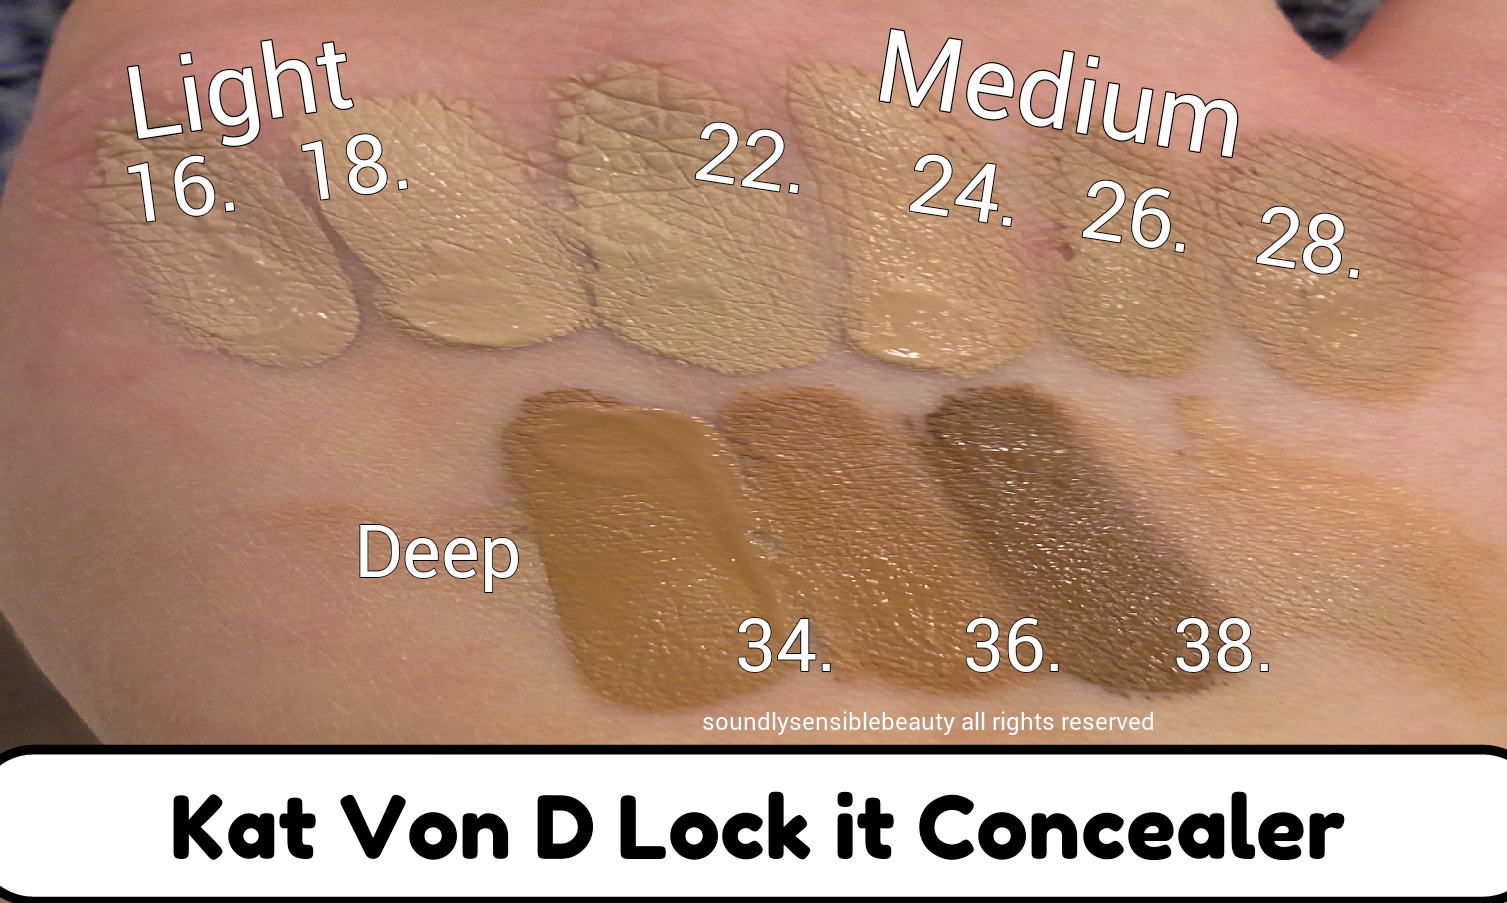 Kat Von D Lock It Concealer; Review & Swatches of Shades